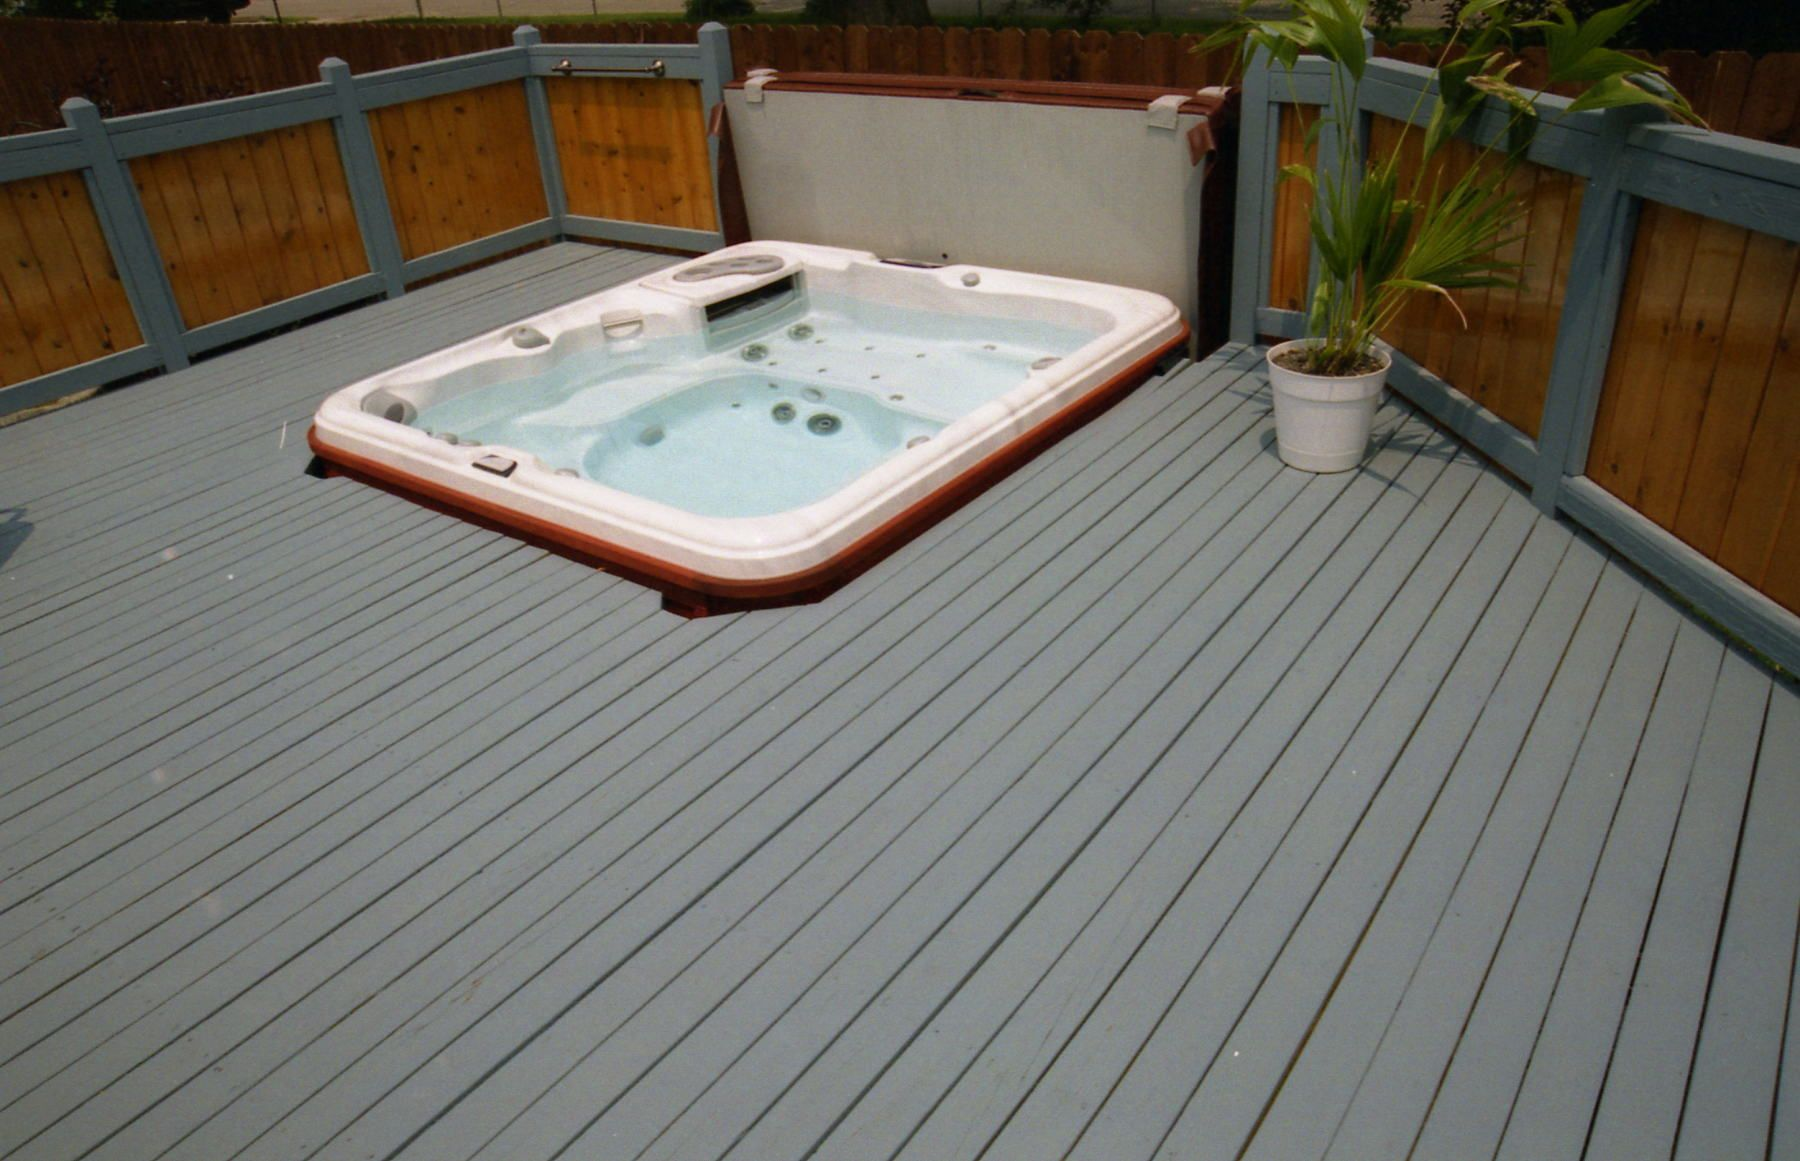 Hot Tub Built Into Deck With Cover Lifter Hot Tub Deck Hot Tub